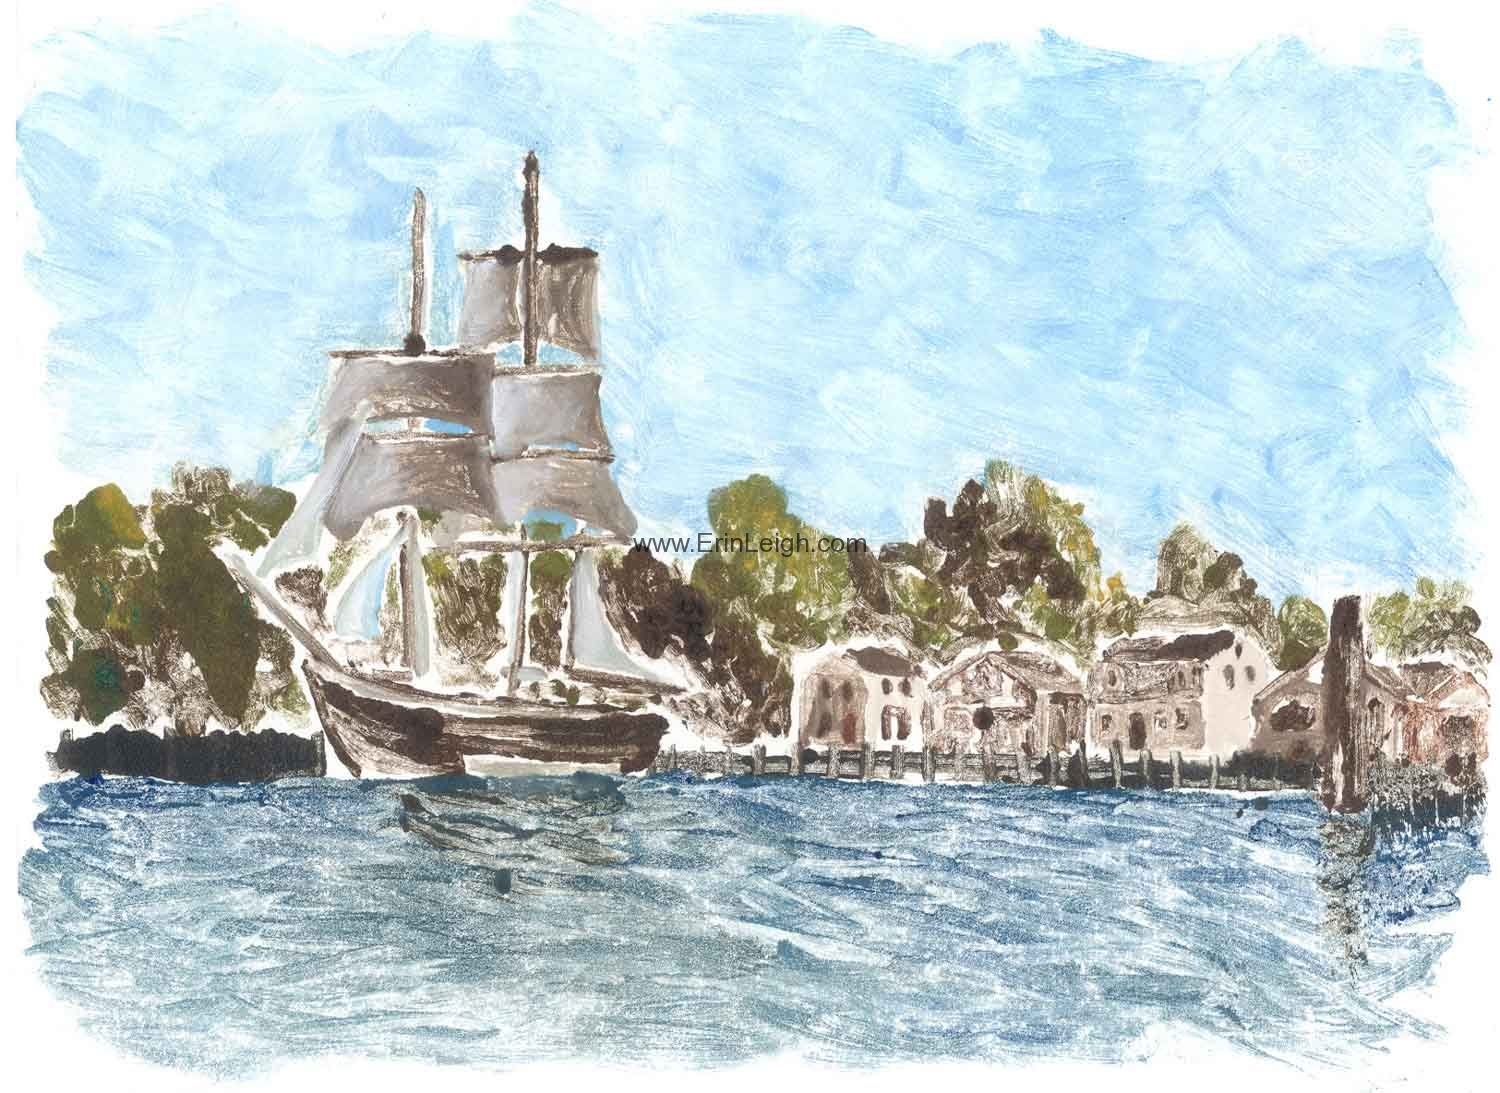 Mystic Seaport by Erin Leigh